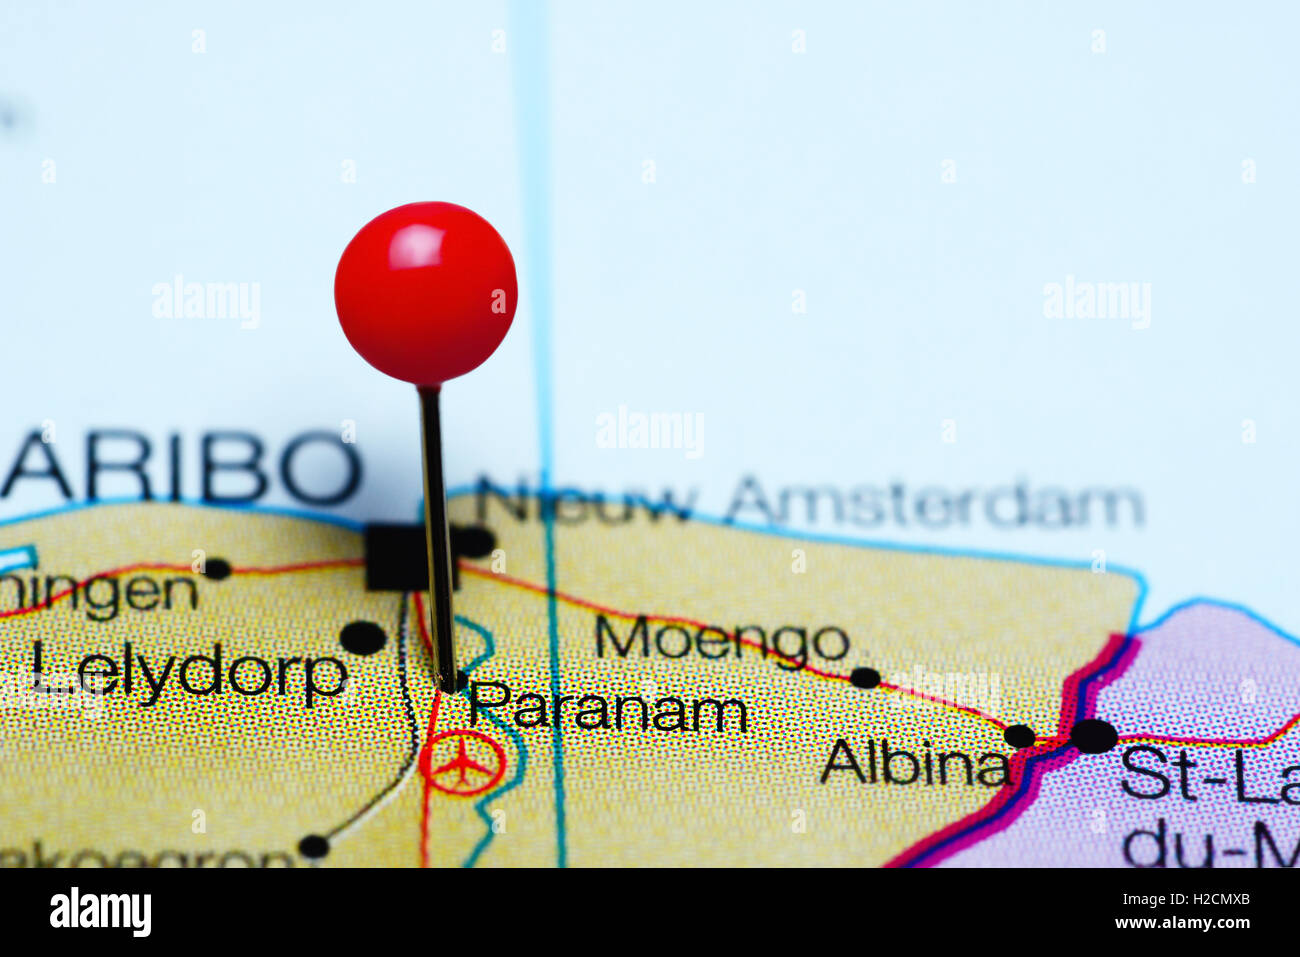 Paranam pinned on a map of Suriname - Stock Image